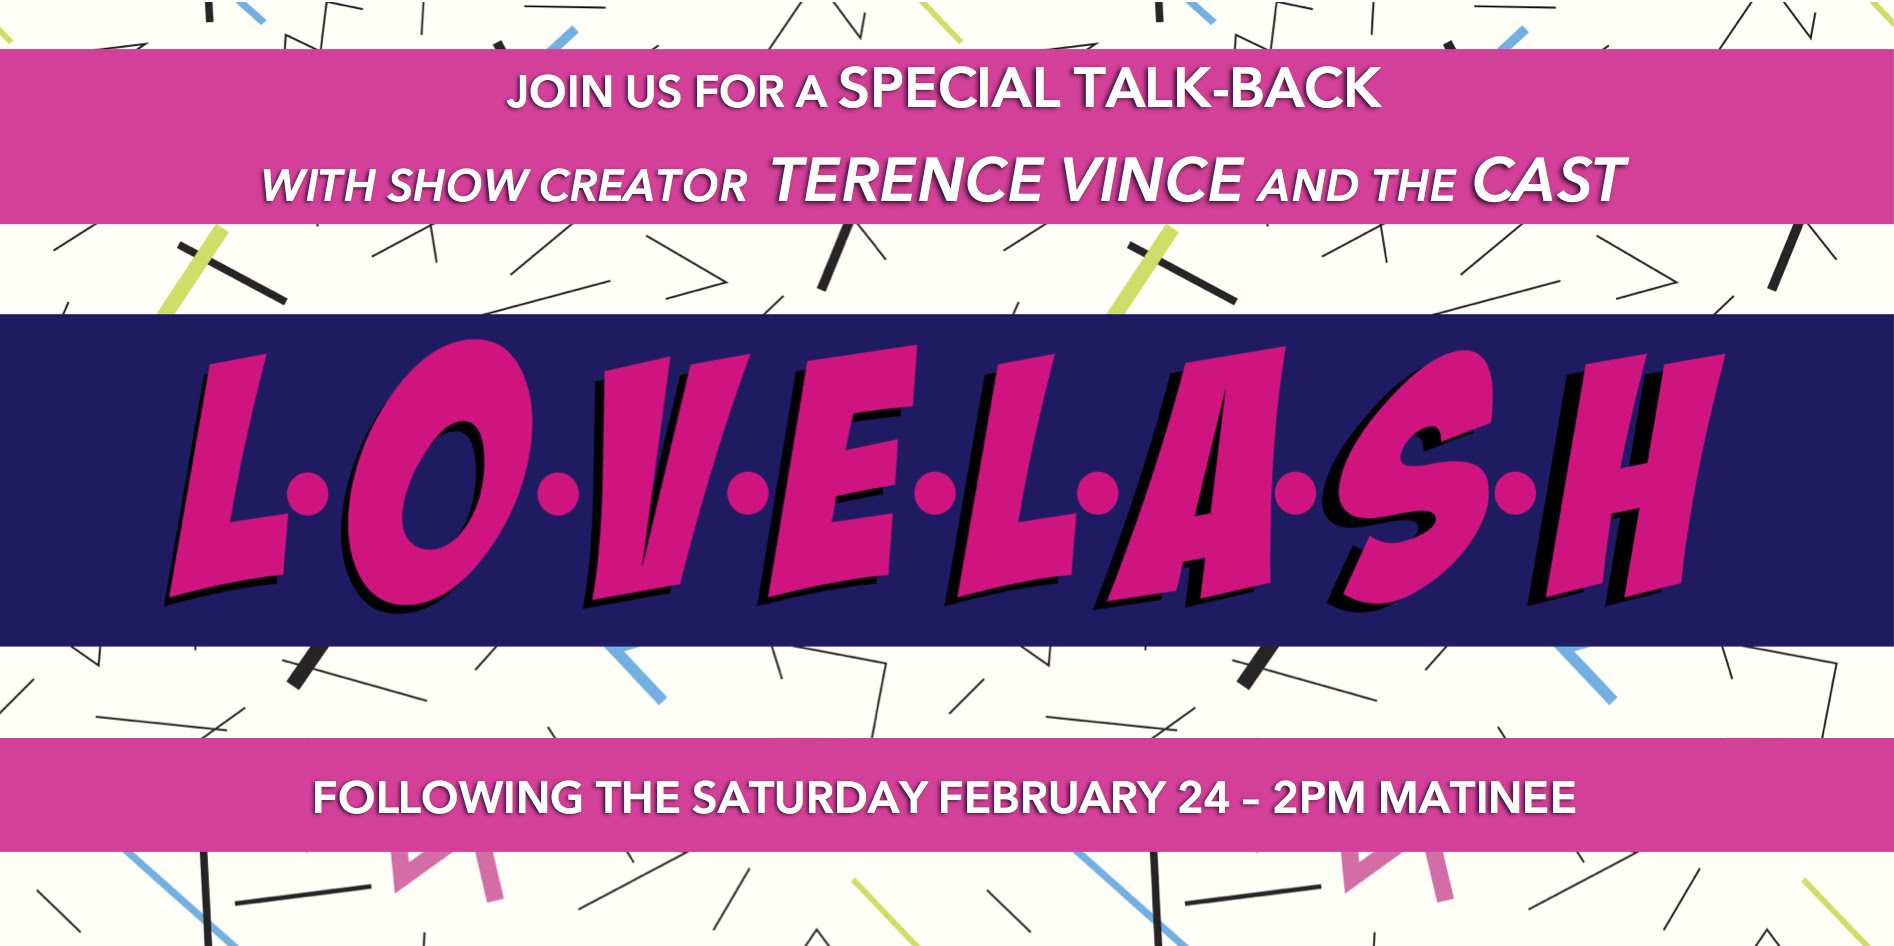 Ever wanted to understand a writer's process? Curious about an actor's experiences in a workshop? Terence Vince, creator of LOVELASH, and the talented cast would like to invite you to stick around after the Saturday February 24th matinee performance at The ARTS Project for an informal talkback session. Bring your questions and offer your insights into this new original musical.